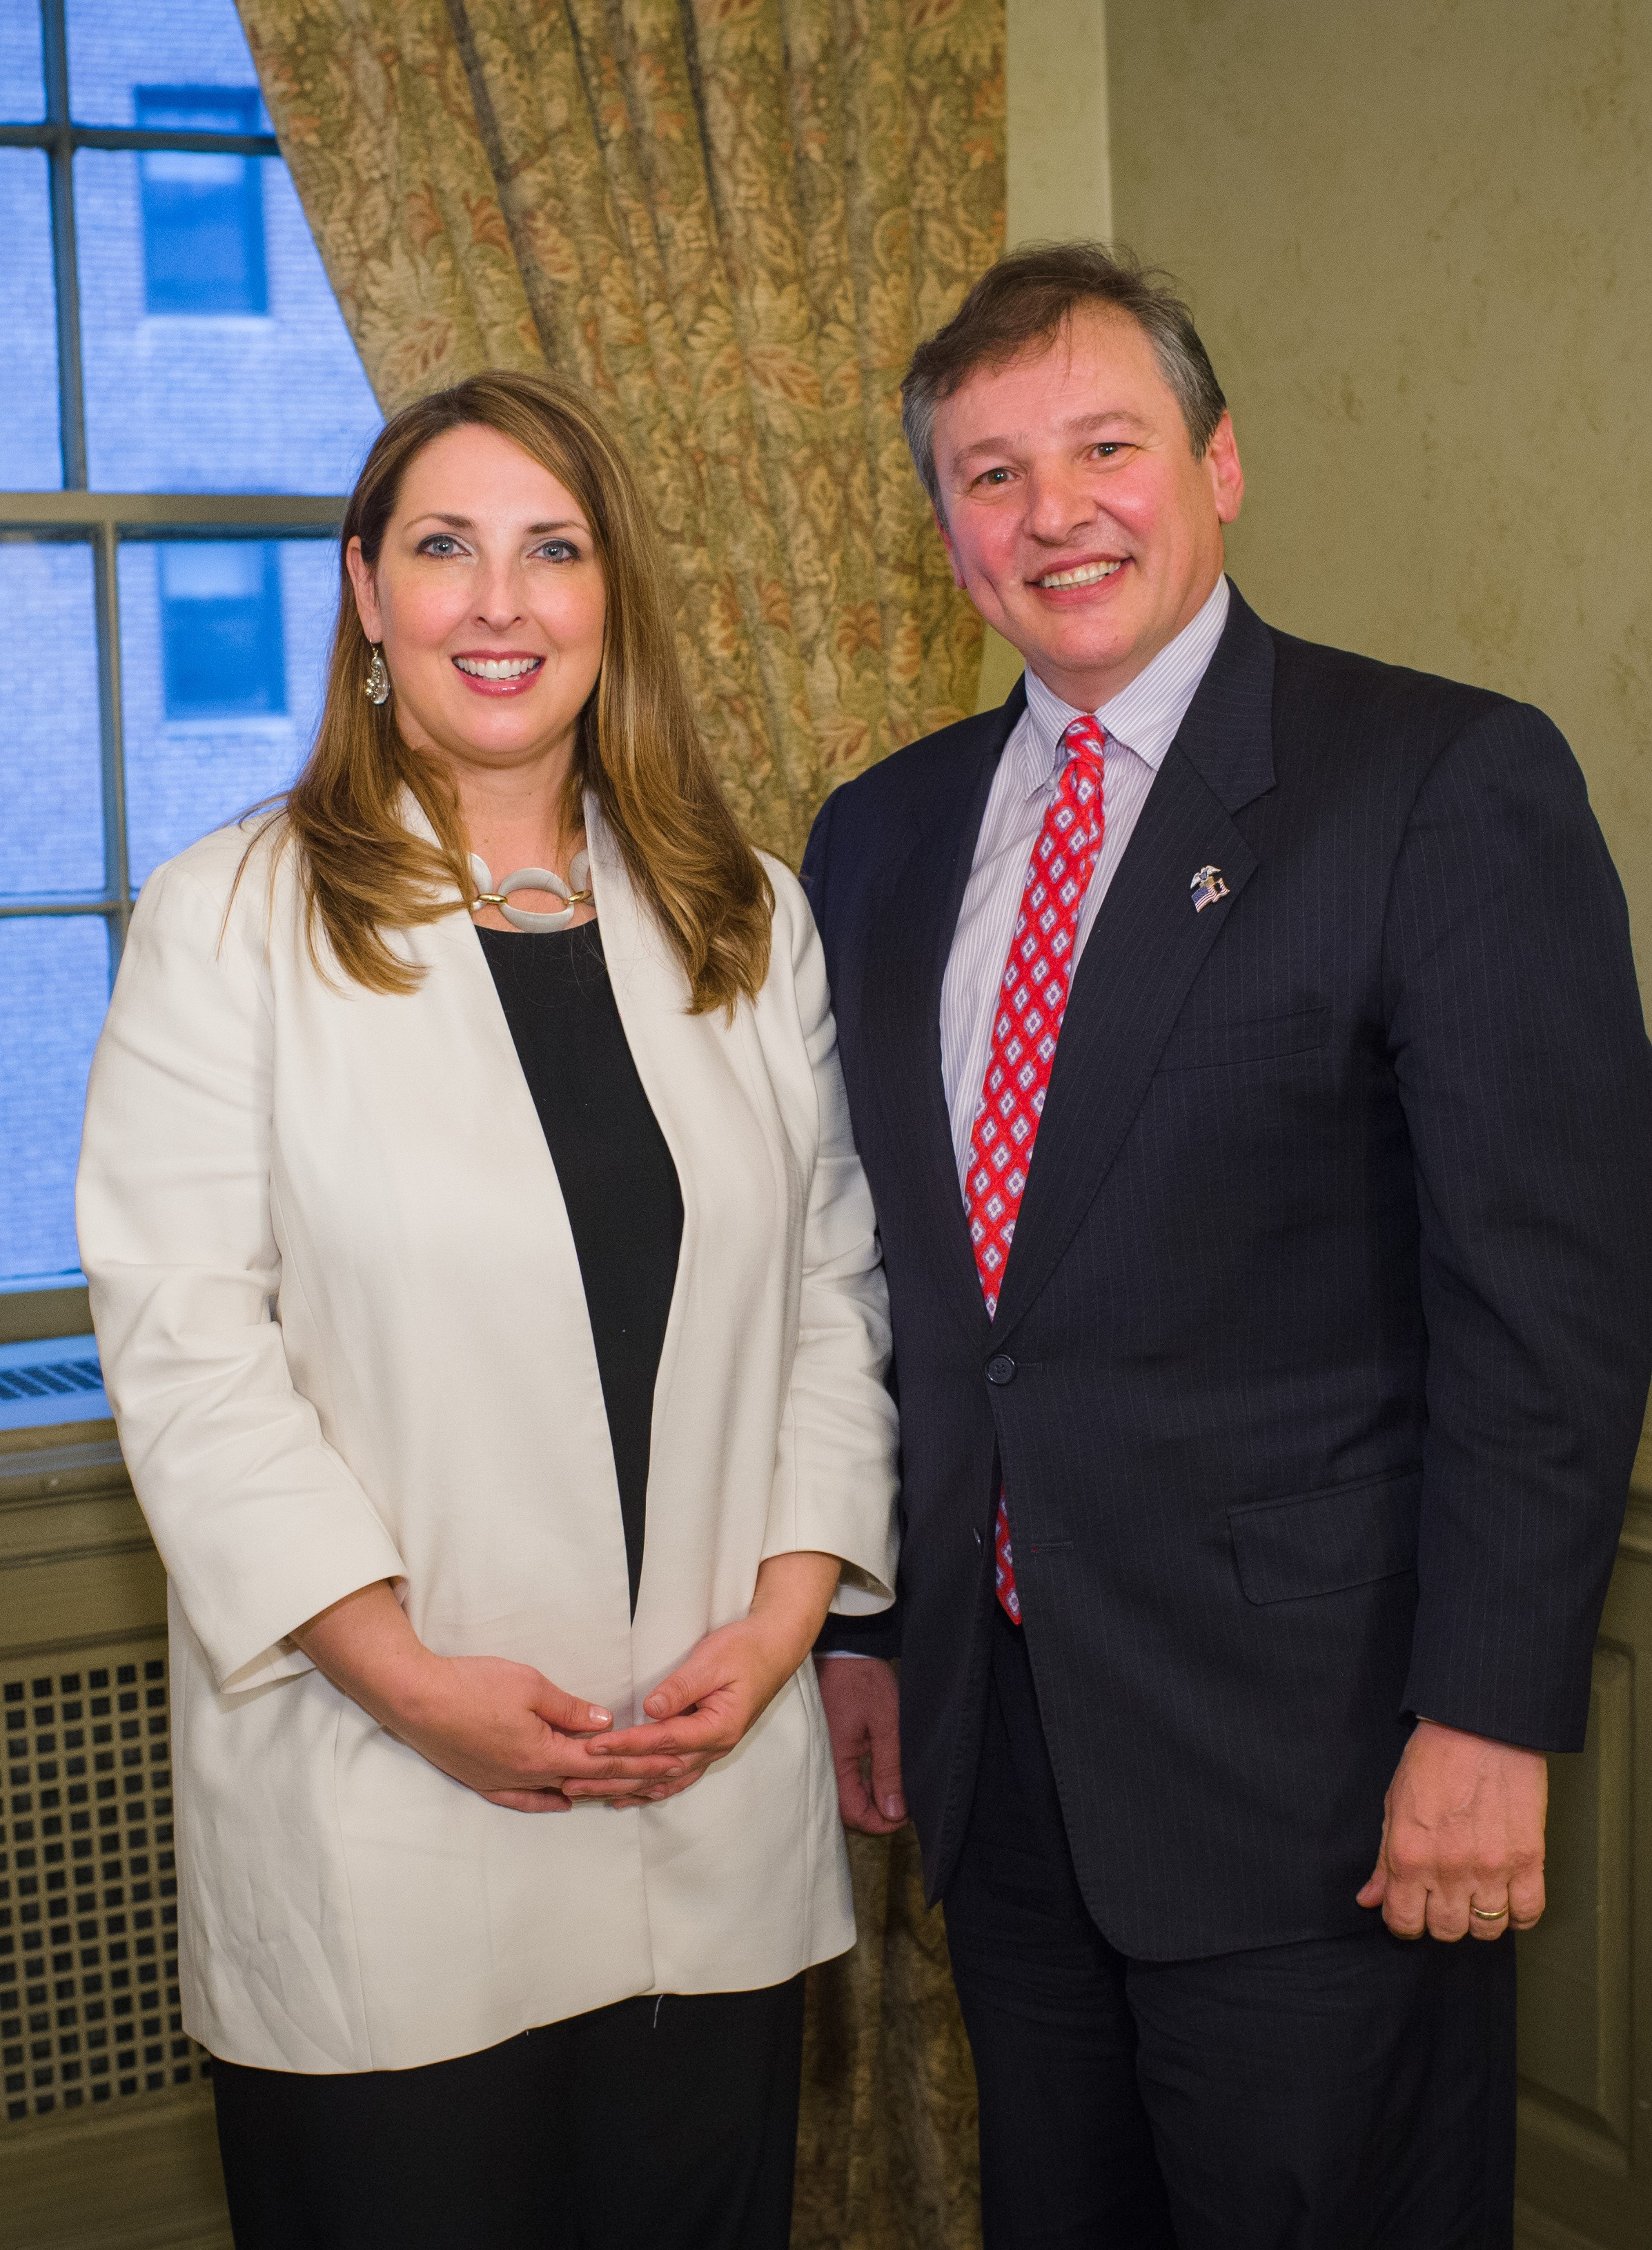 Pat LaVecchia and Ronna McDaniel, Chair of the Republican National Committee